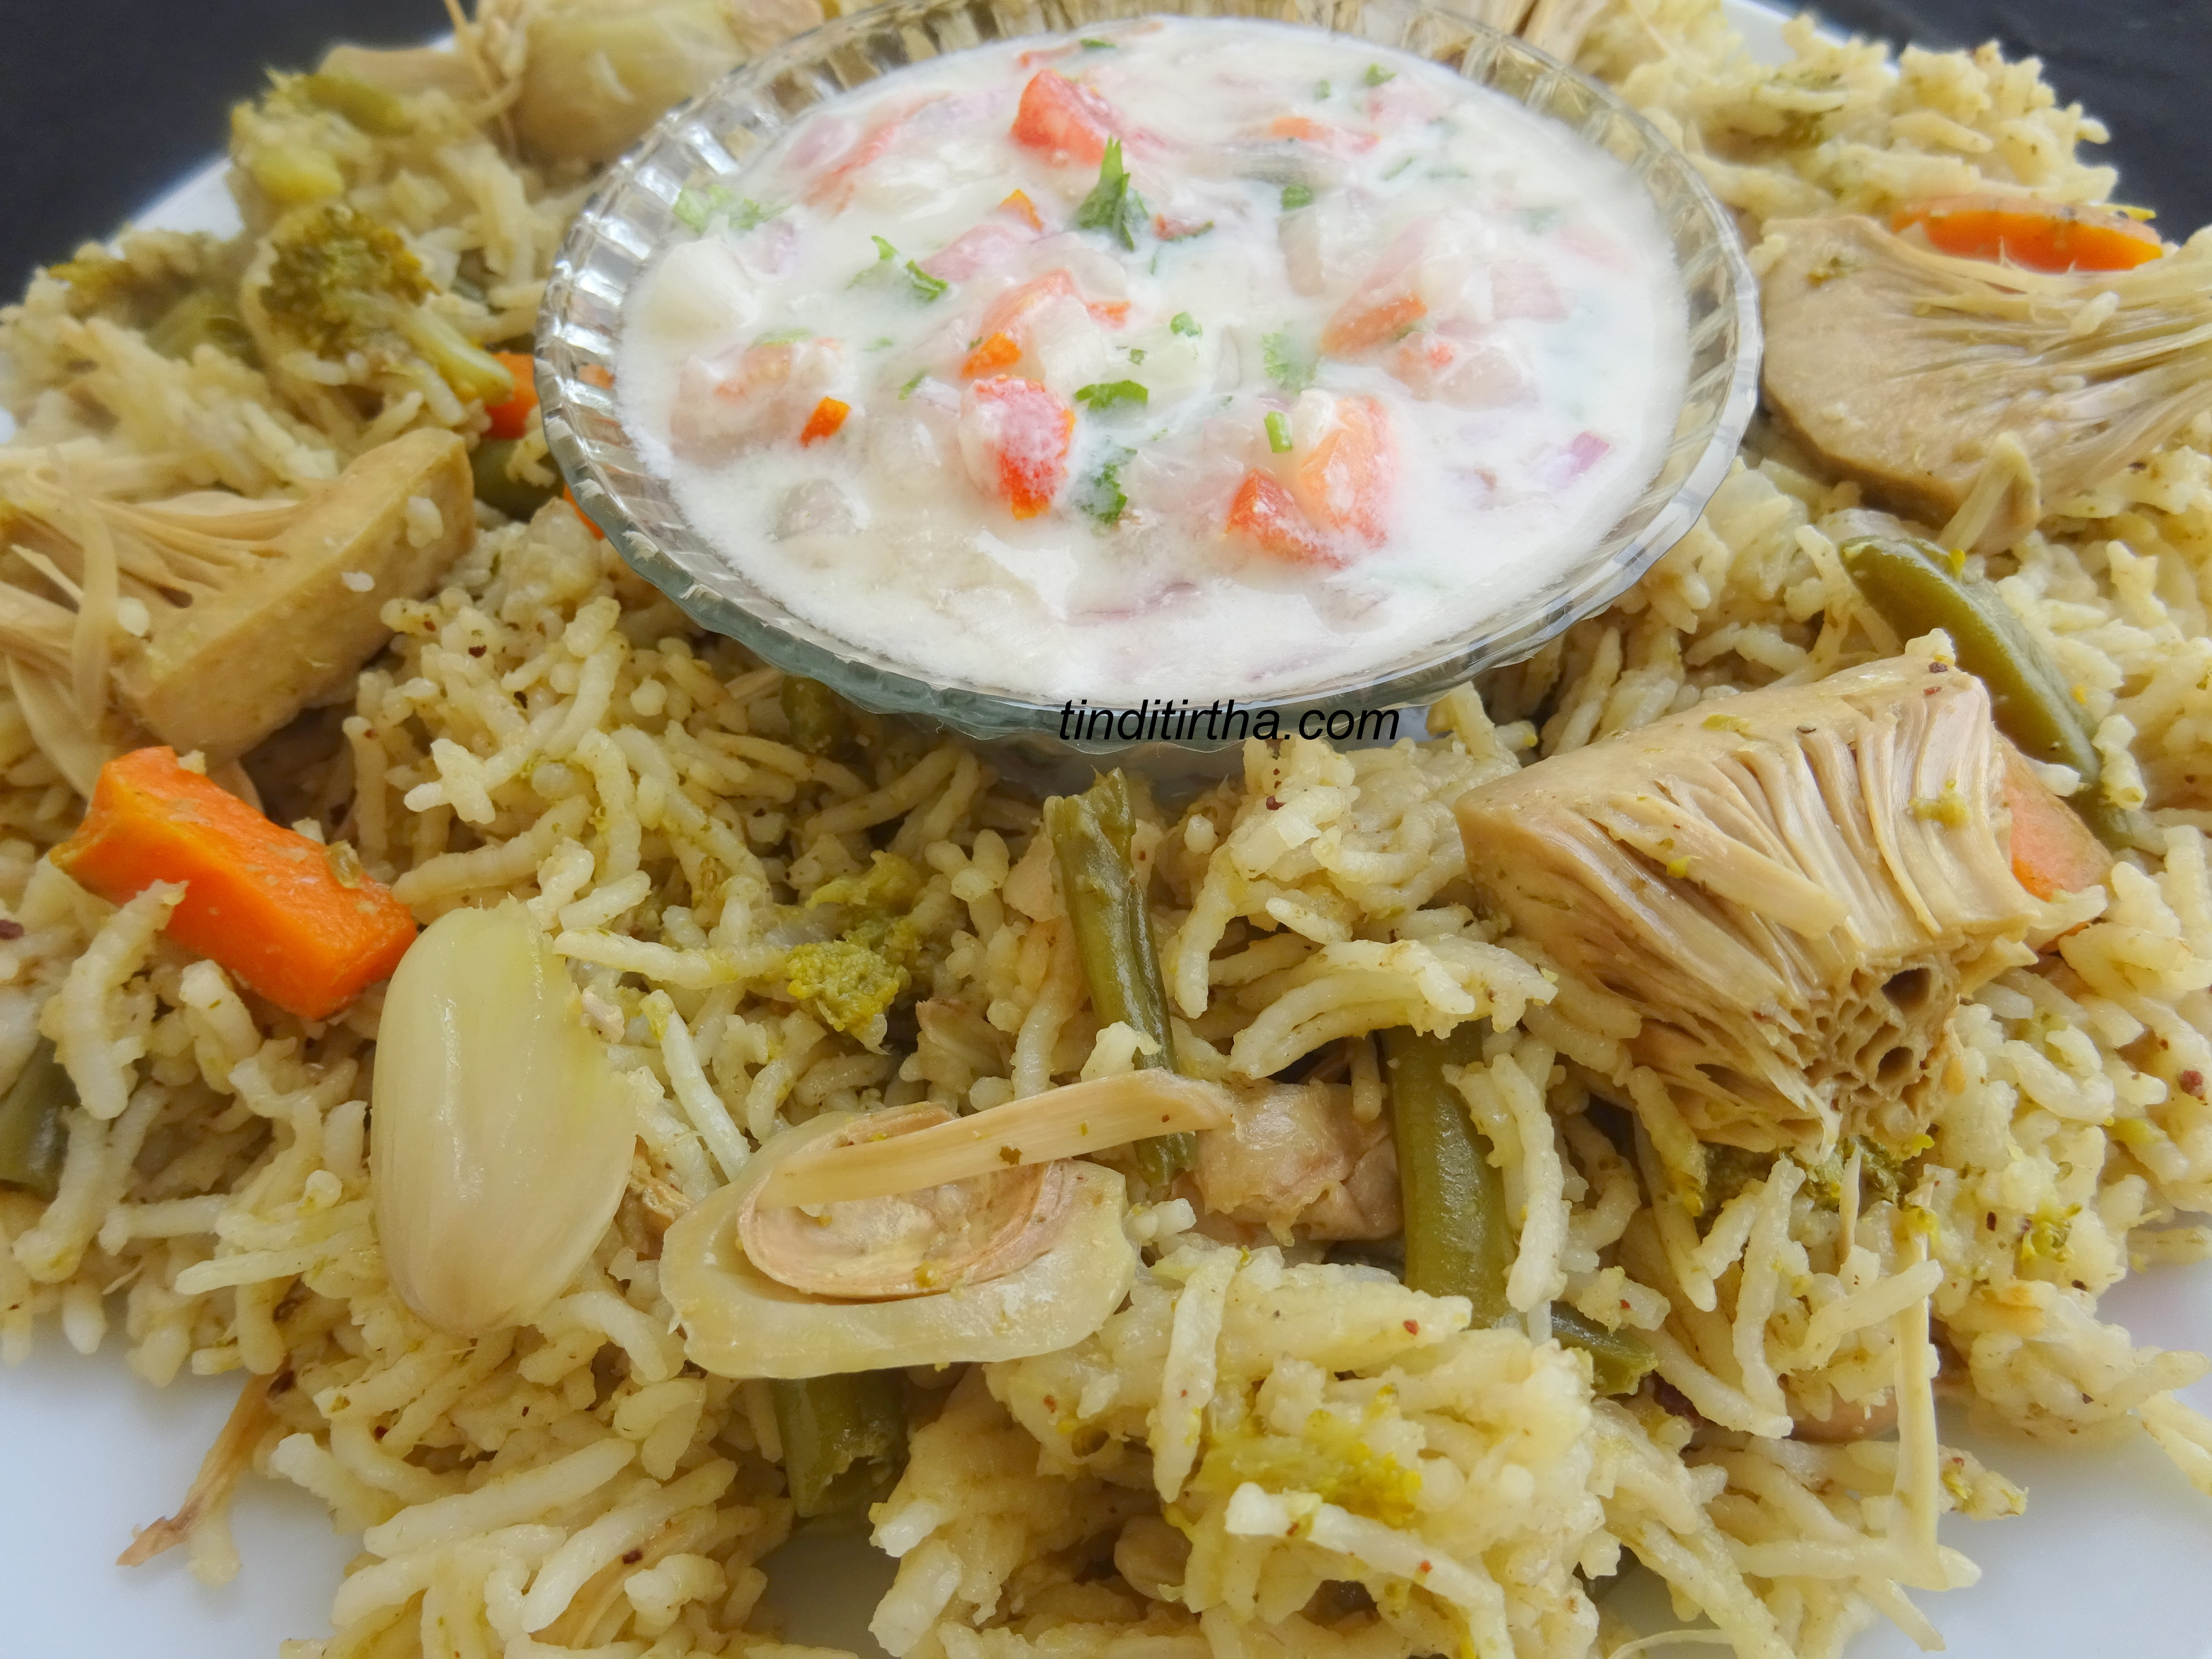 JACKFRUIT VEGETABLE PULAO